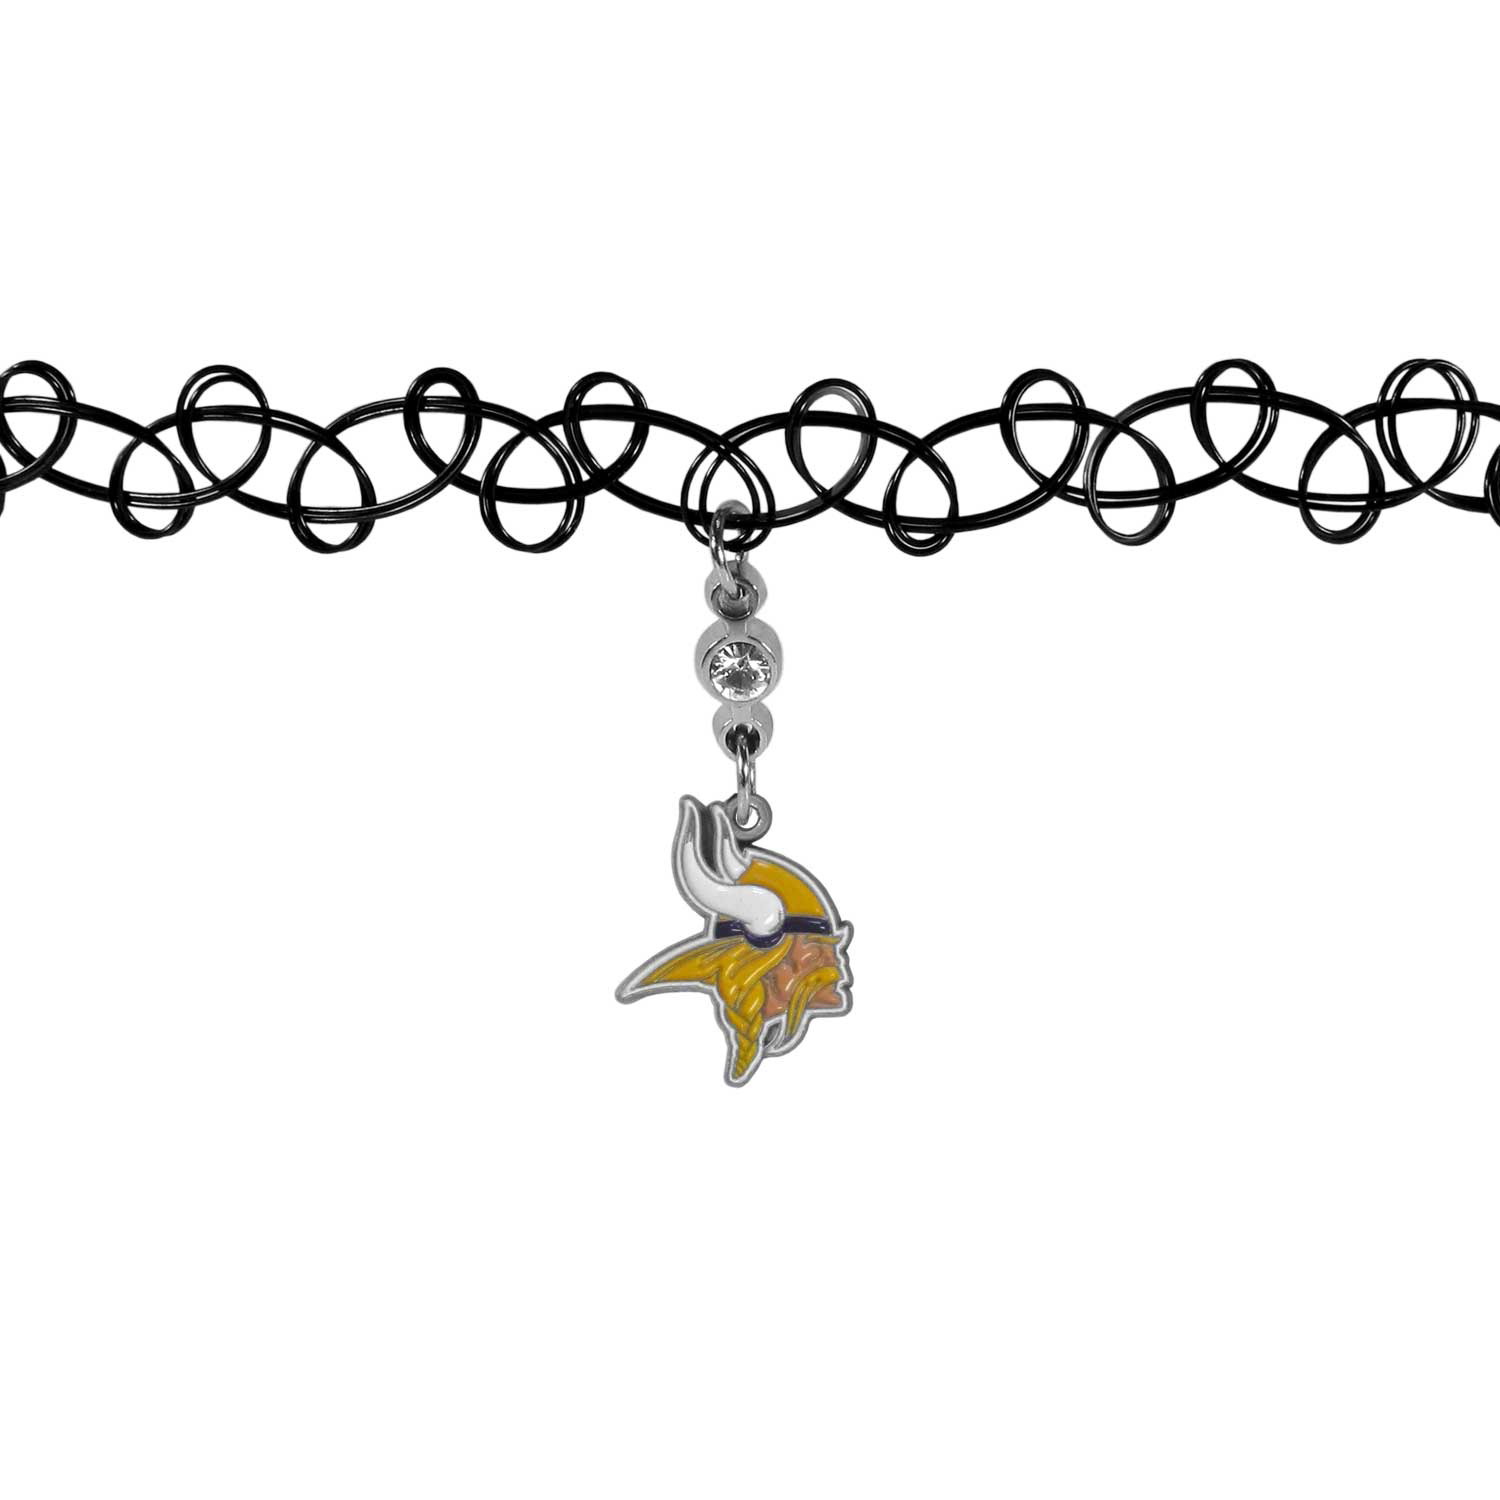 Minnesota Vikings Knotted Choker - This retro, knotted choker is a cool and unique piece of fan jewelry. The tattoo style choker features a high polish Minnesota Vikings charm with rhinestone accents.